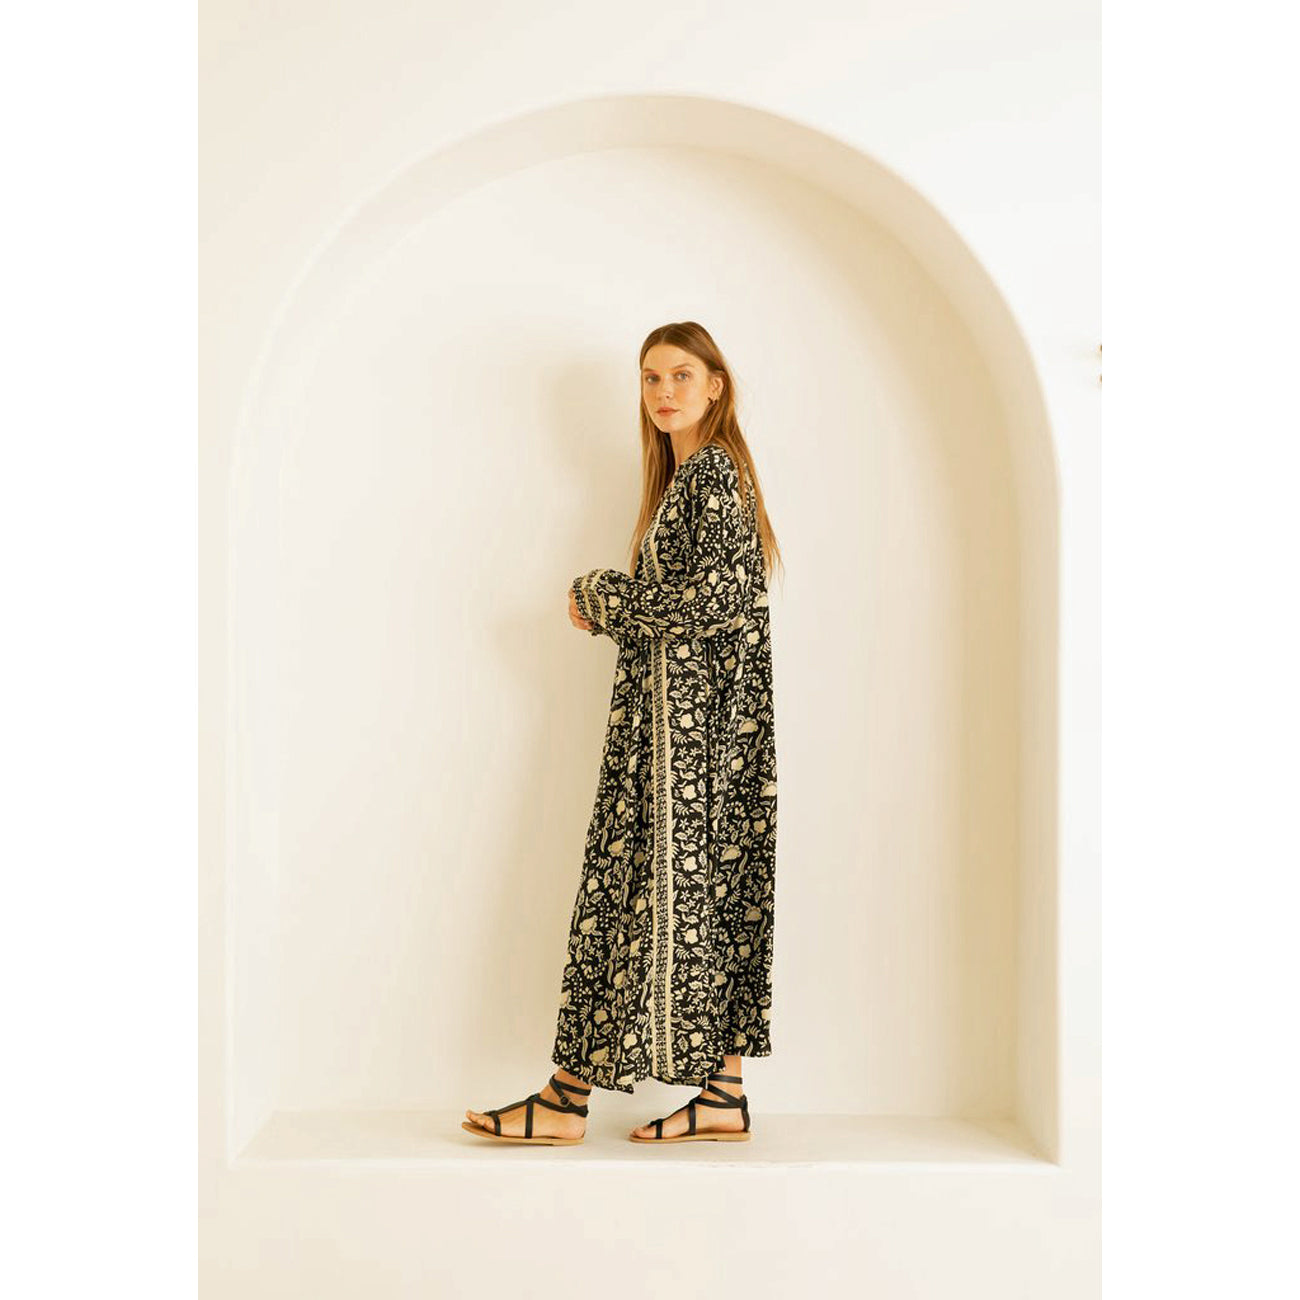 fiore maxi in autumn silhouette